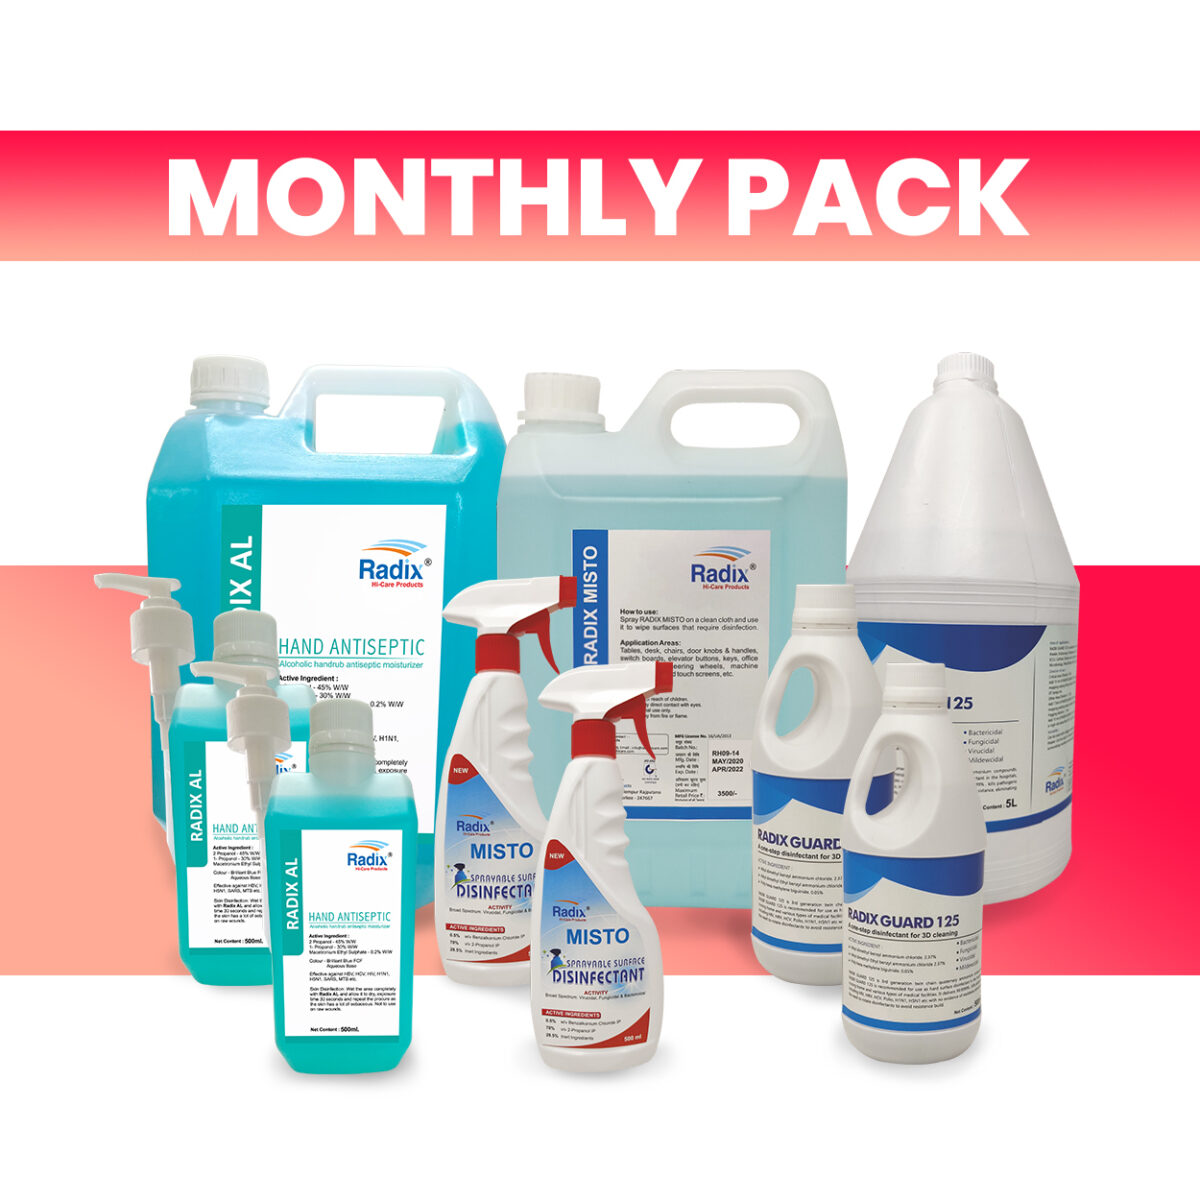 Monthly Pack